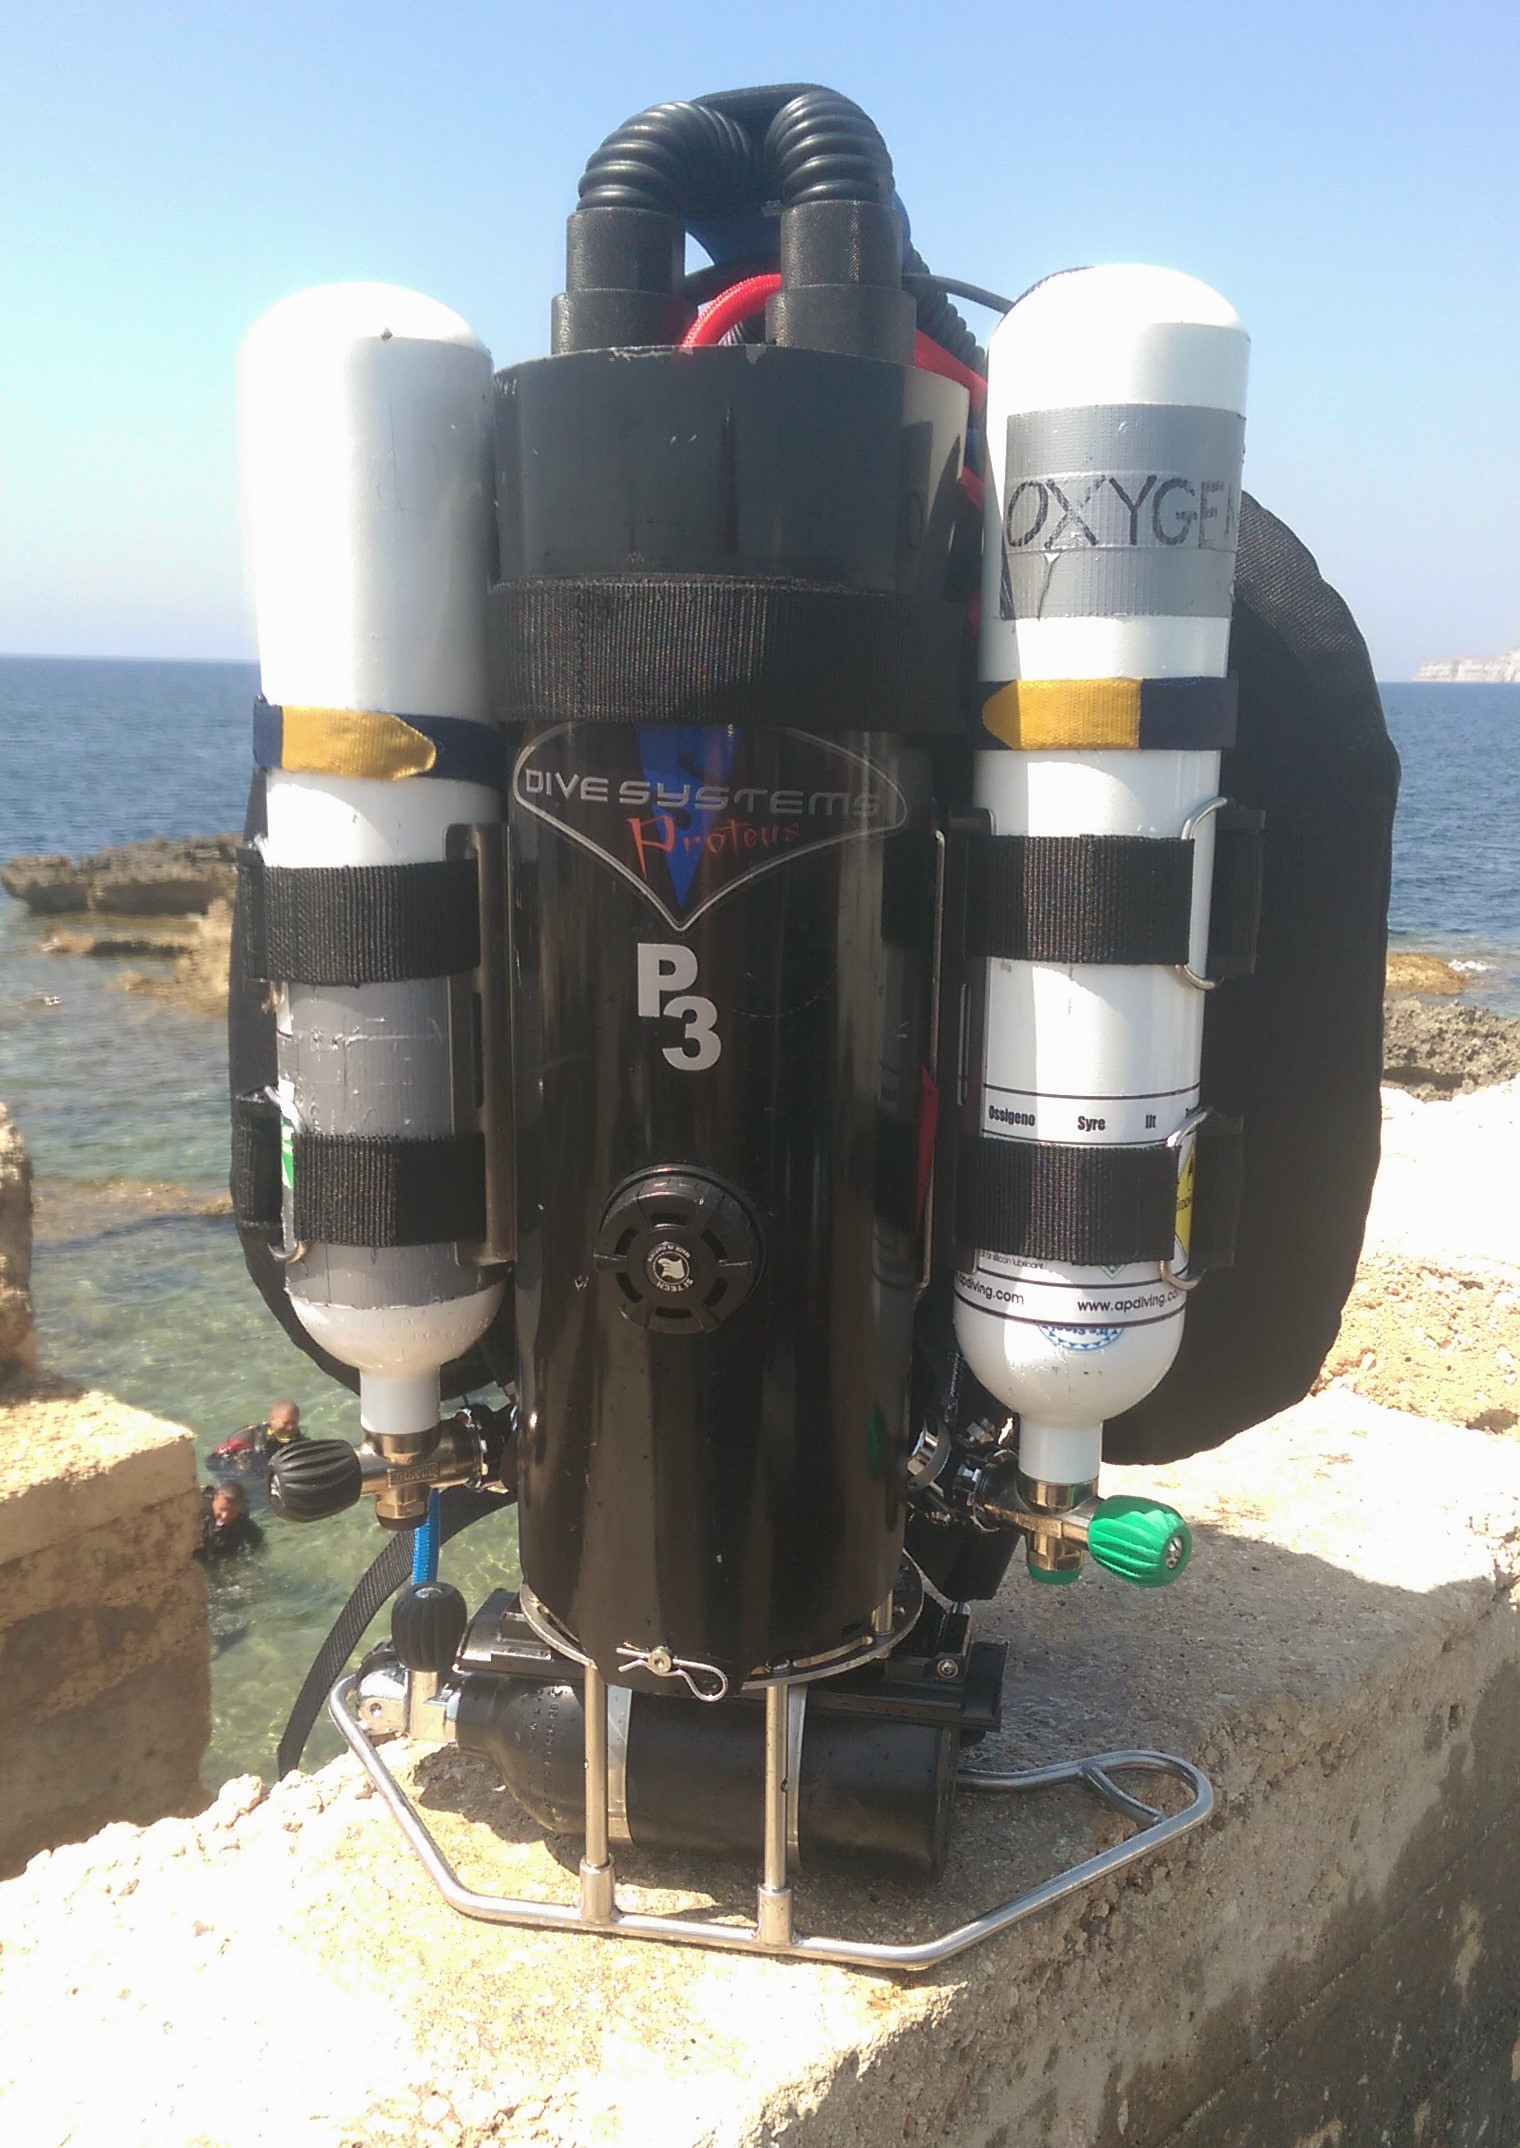 Dive-Systems-Proteus-P2-Backmount-Rebreather-0132.jpg